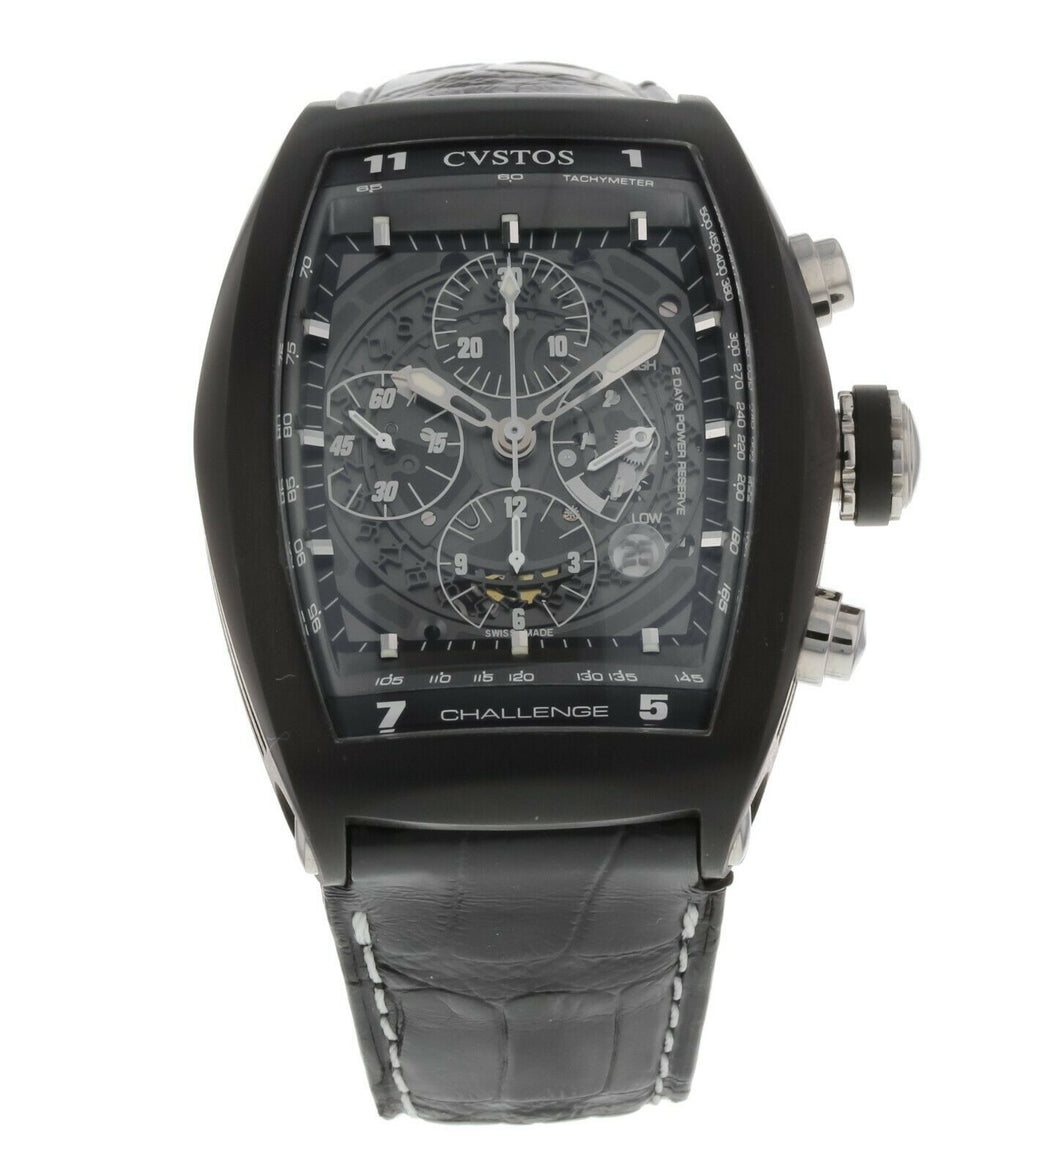 Cvstos Challenge Chronograph Automatic Men's Open-Worked Watch